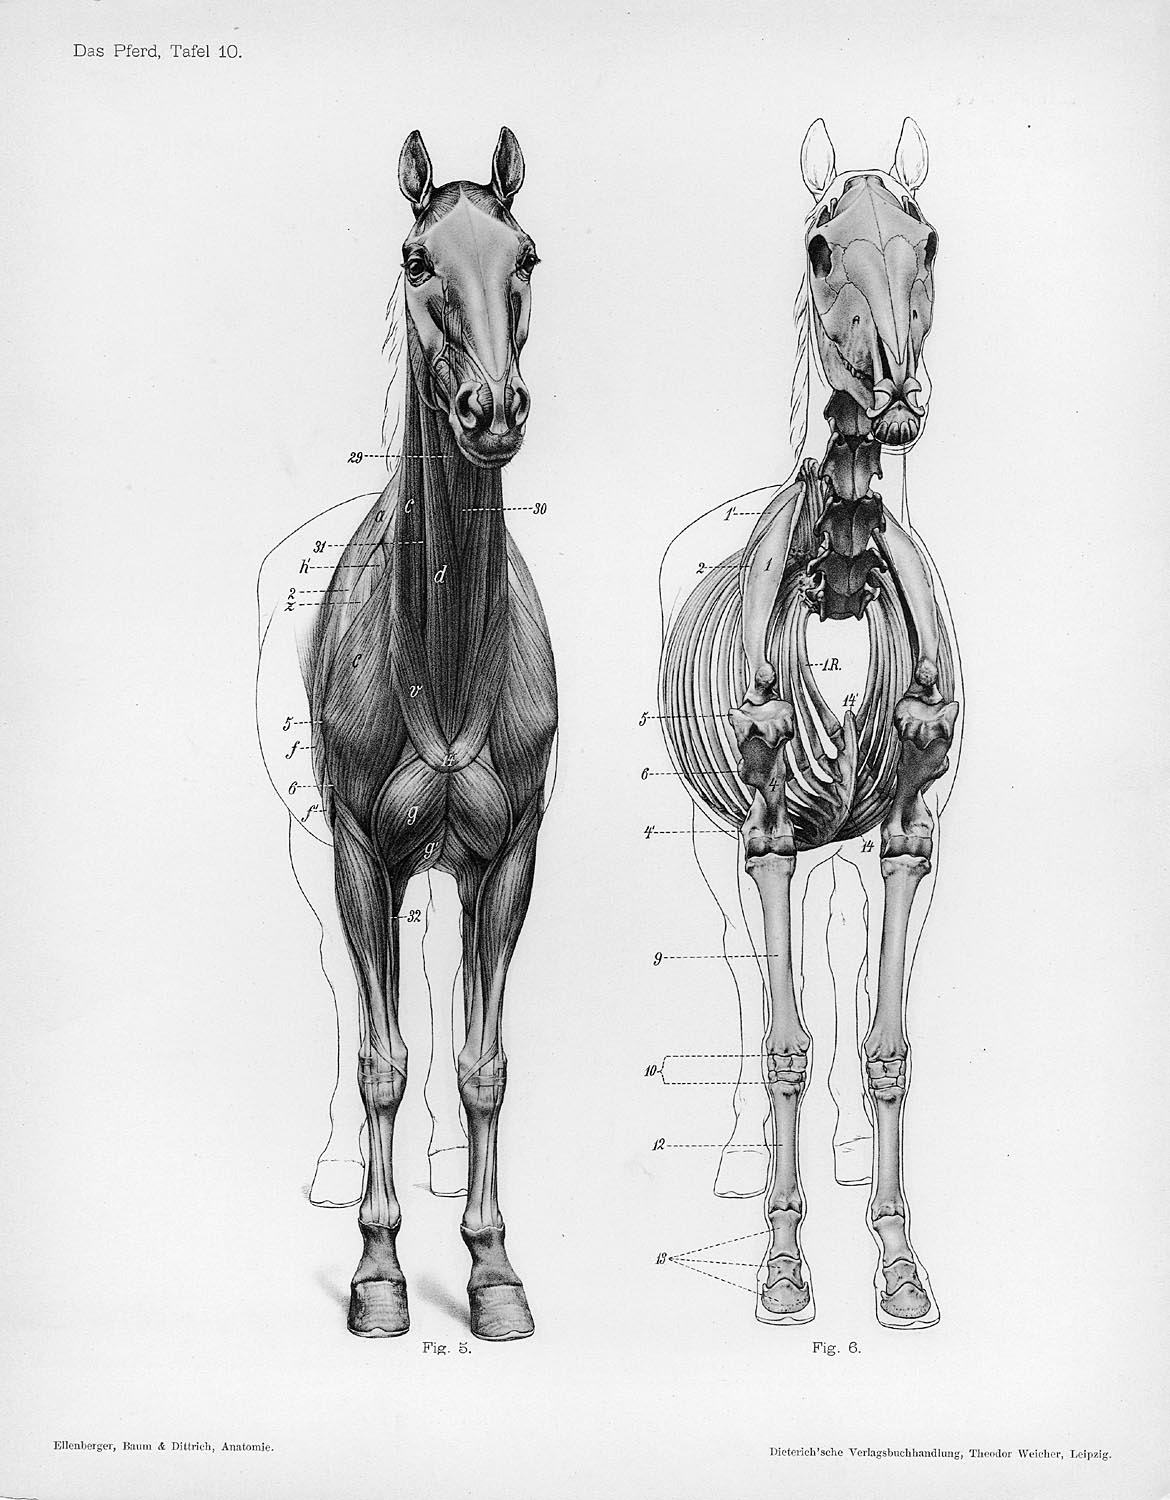 Horse Anatomy By Herman Dittrich Front View Musculature And Bones Shoestring Stable